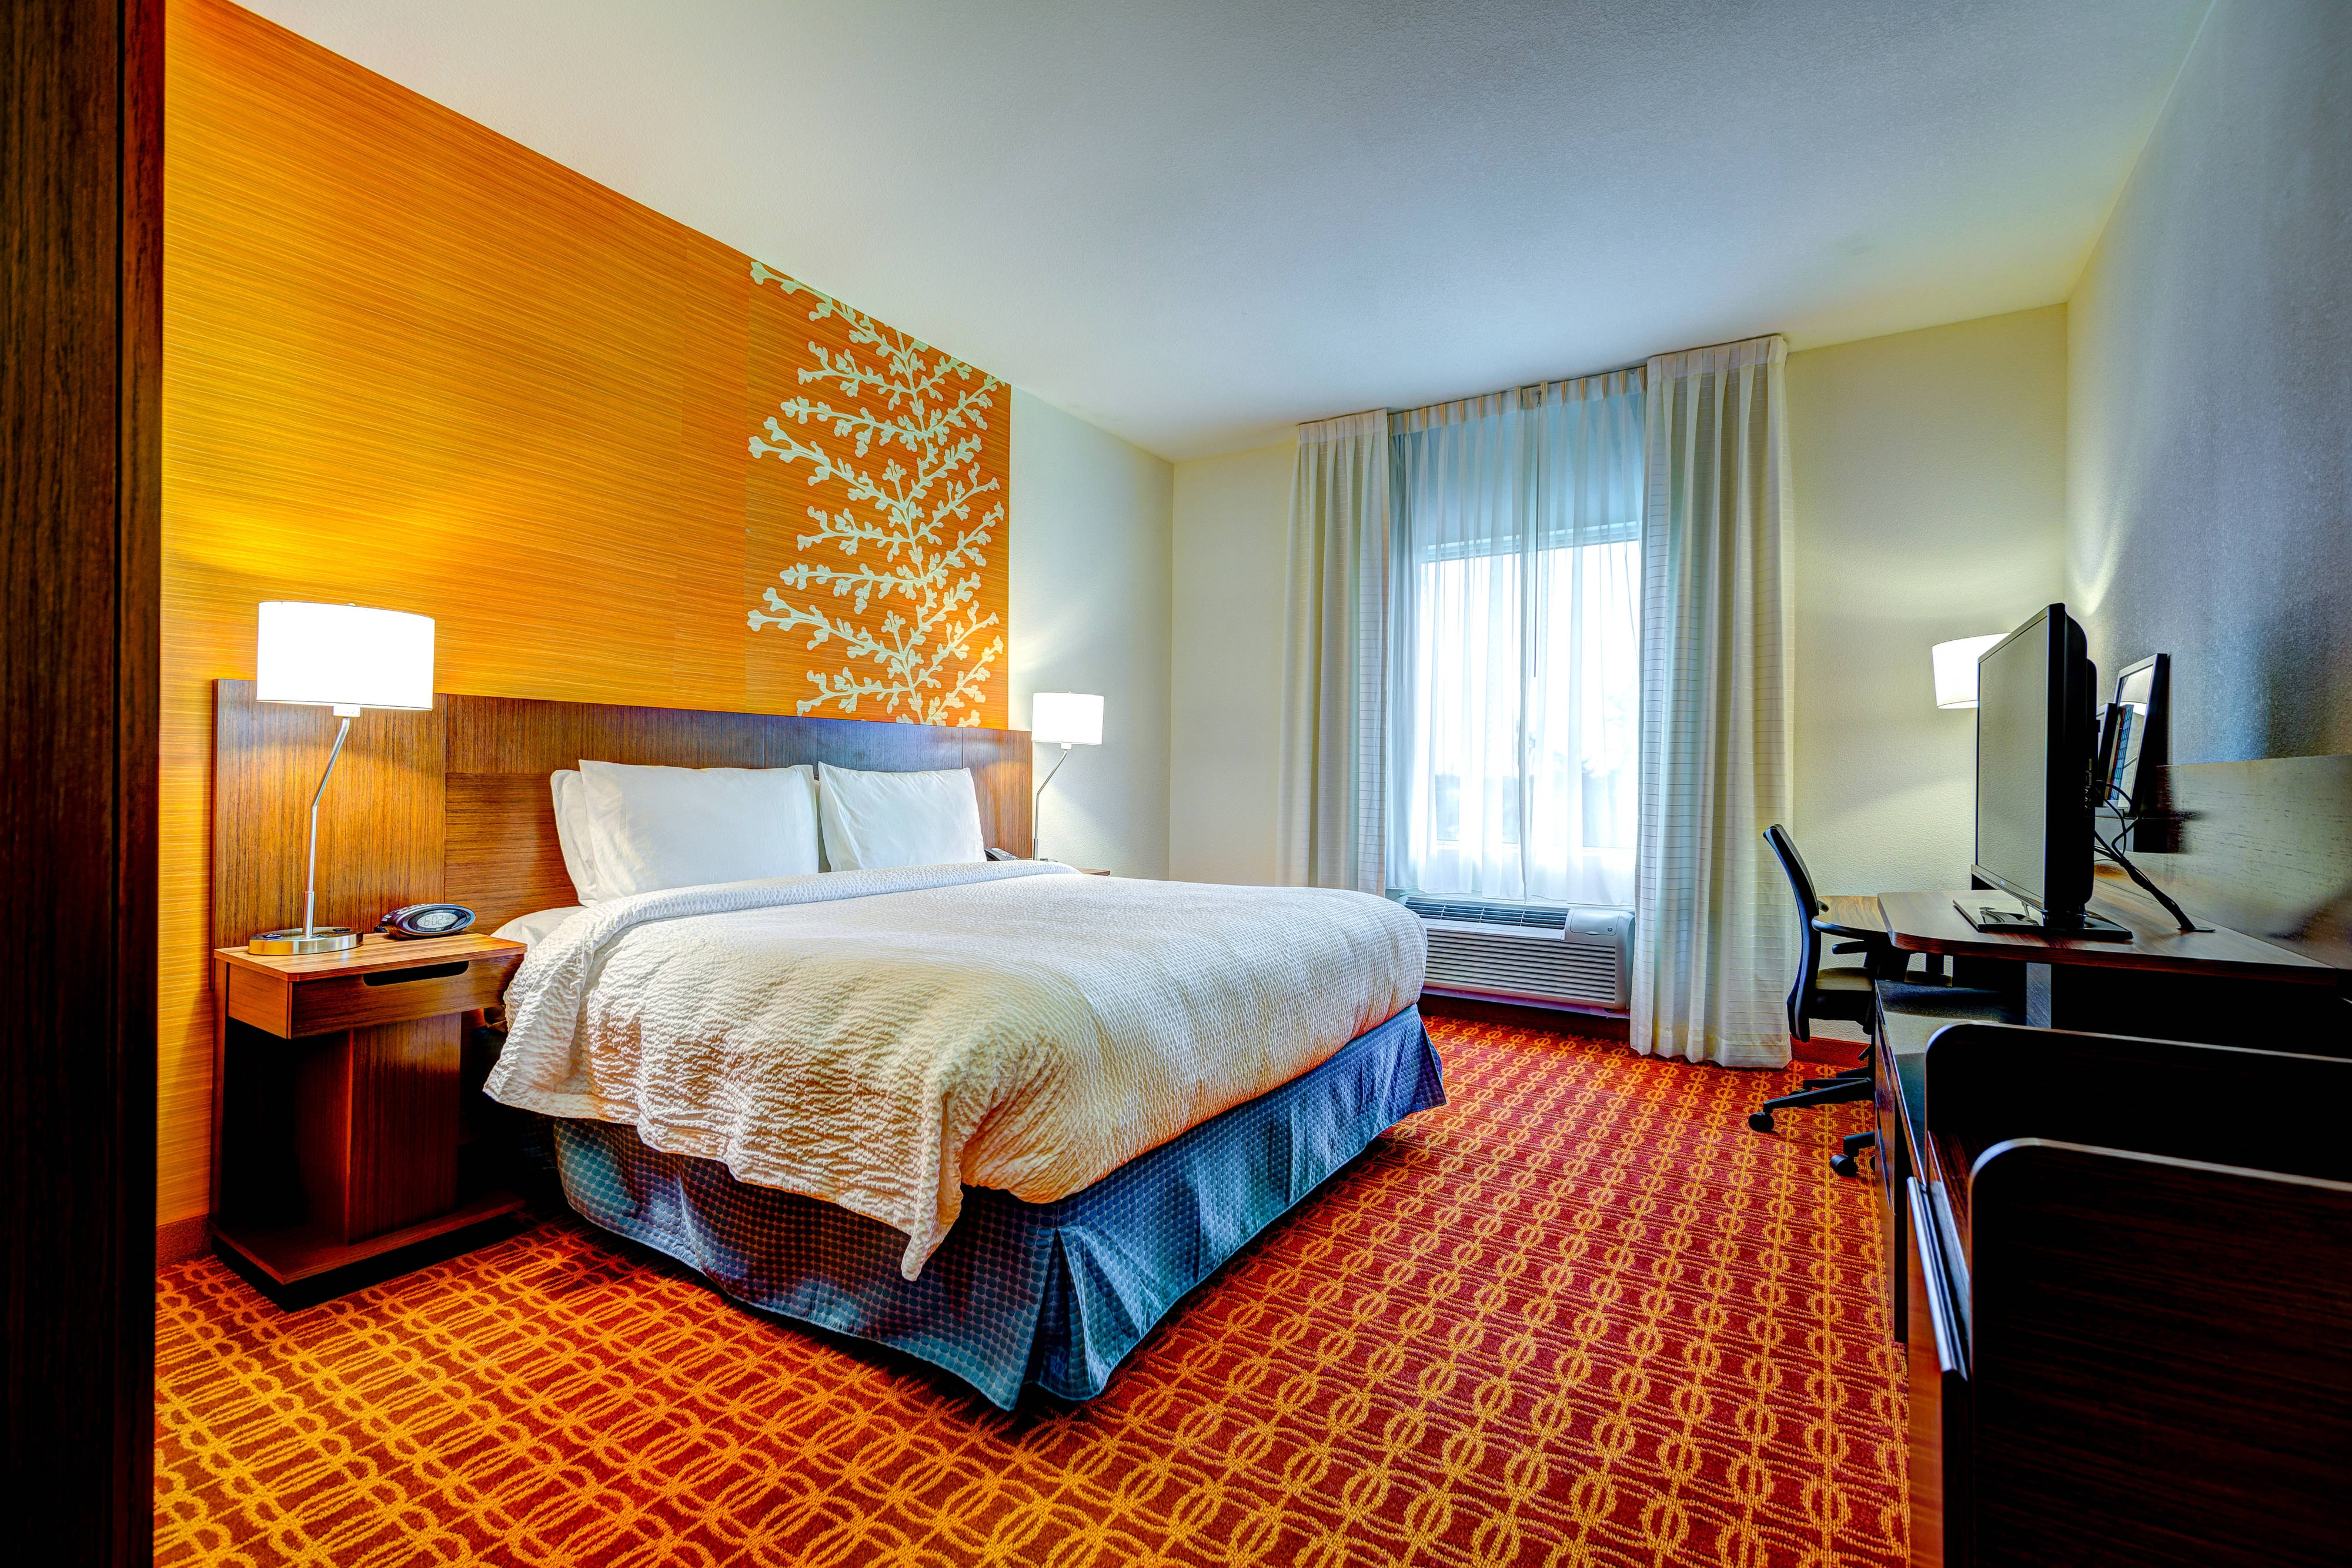 Delray Beach hotel guest rooms